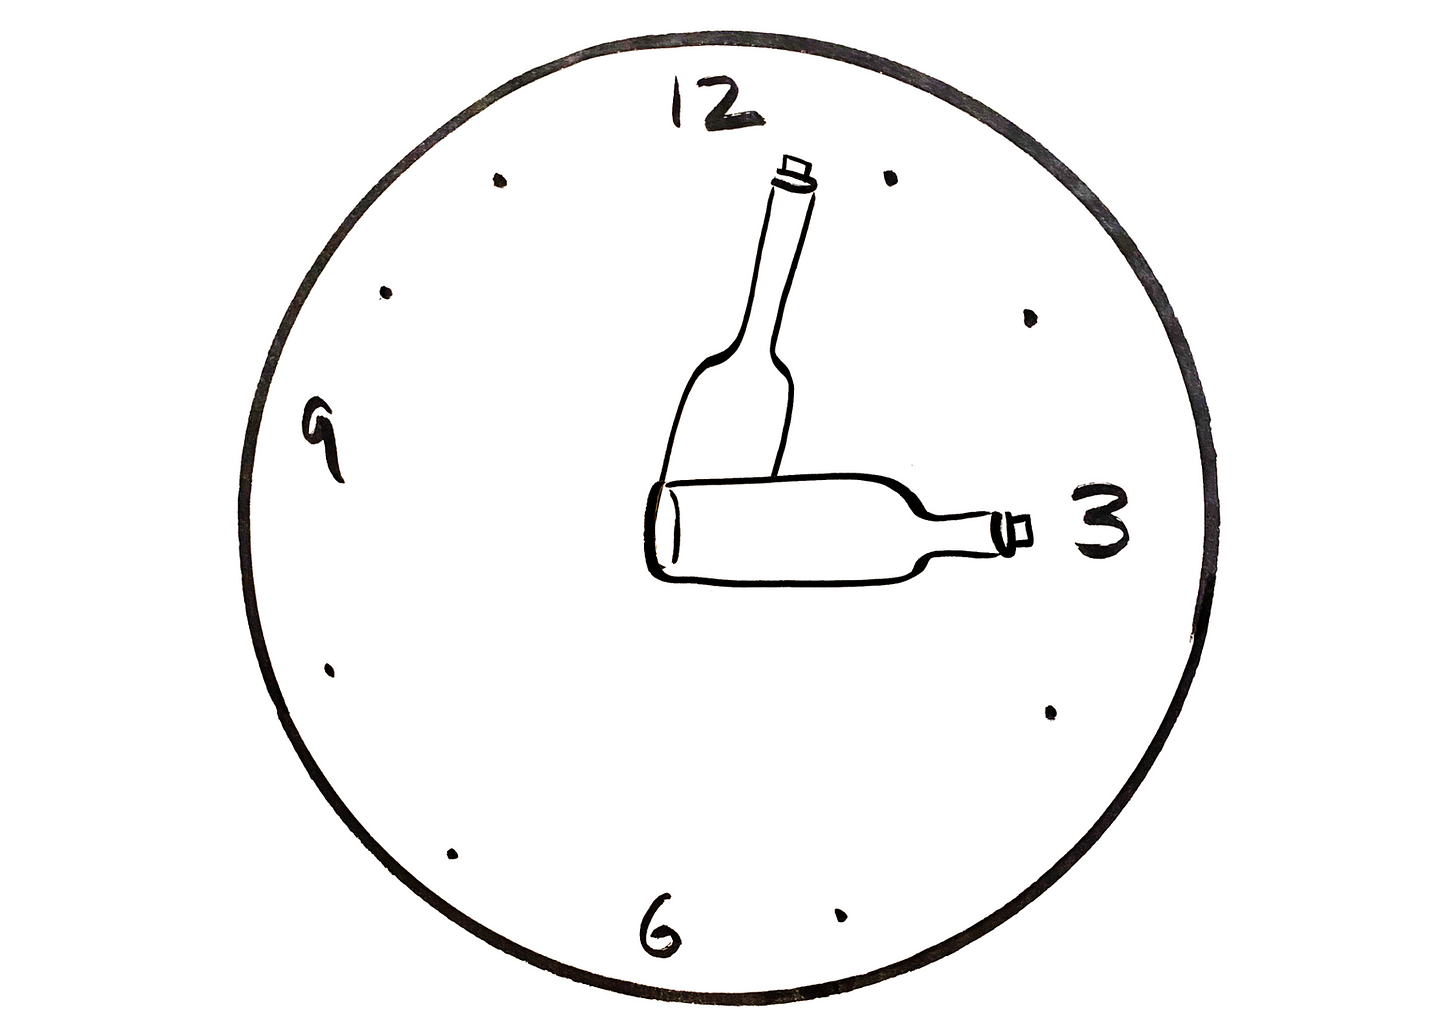 A clock where the hour and minute hands are wine bottles